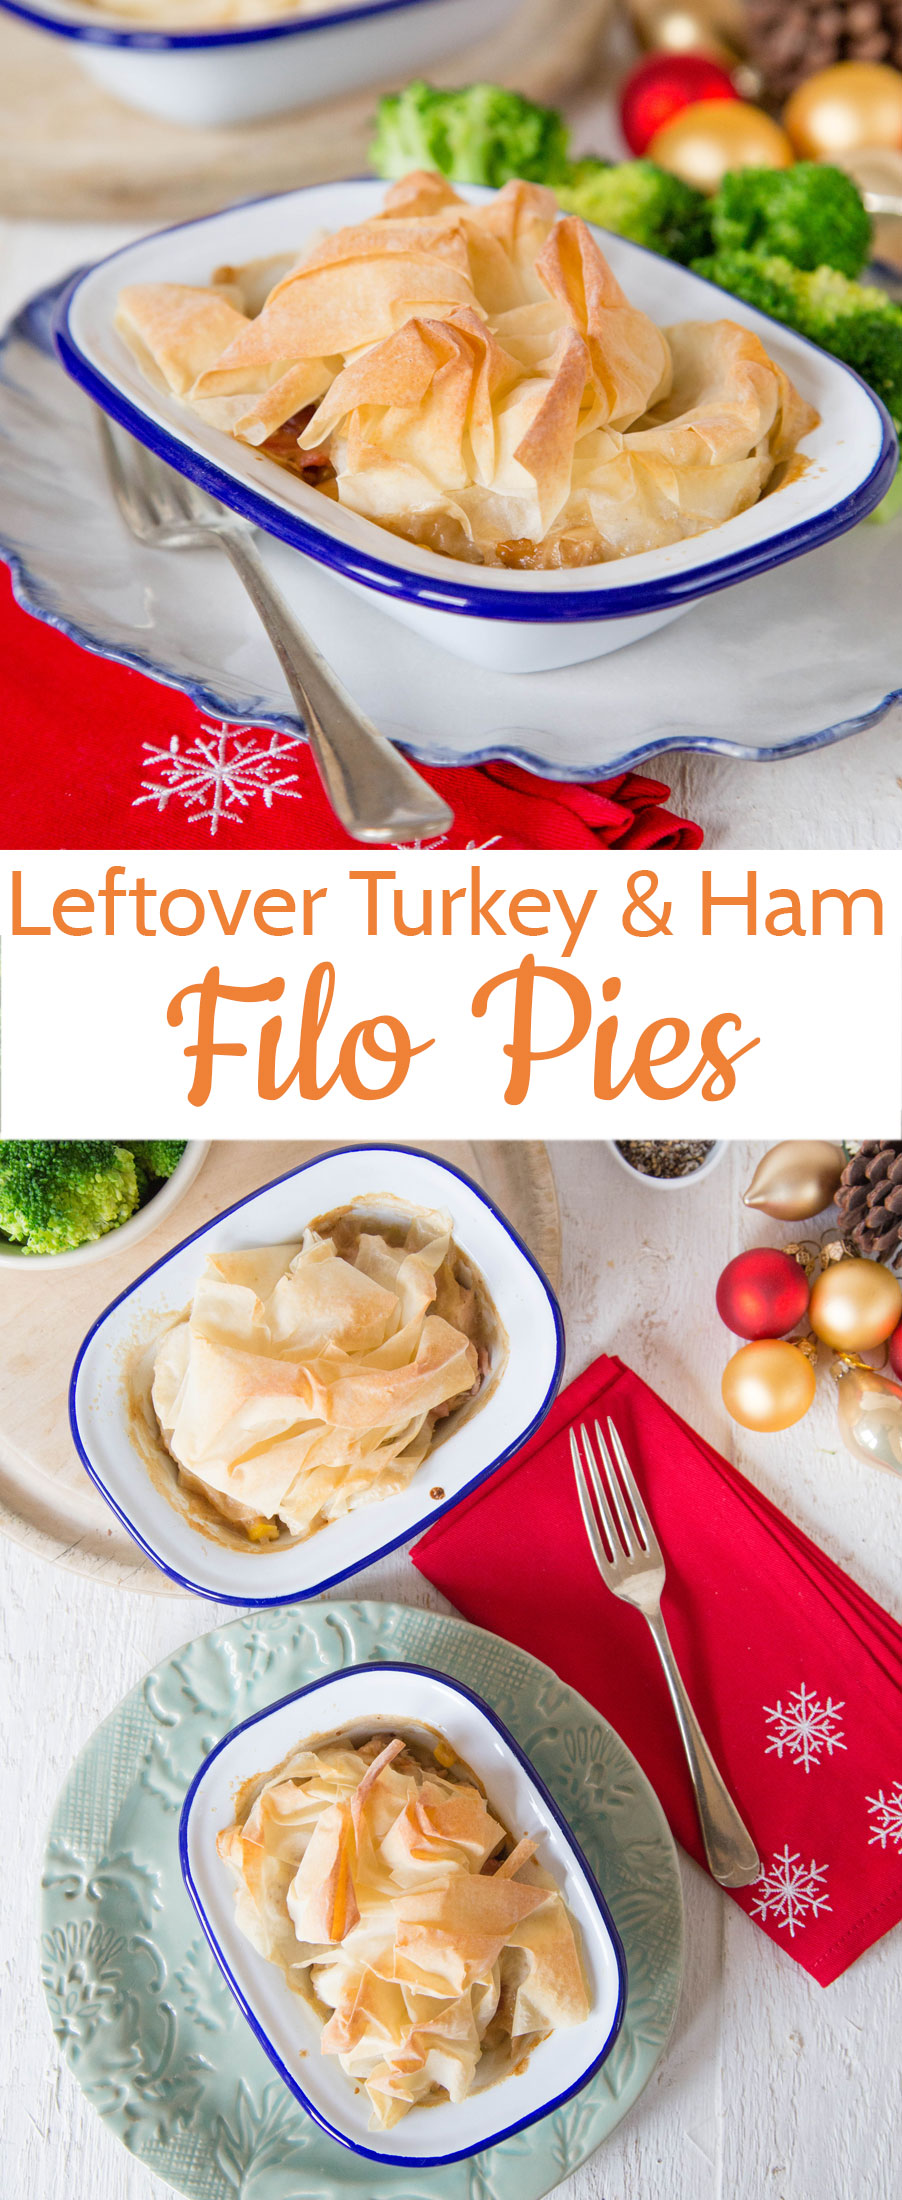 An easy recipe to use up leftover Christmas or Thanksgiving Turkey.  Topped with a single sheet of foil pastry for texture these pies are lighter than a traditional pastry covered pie